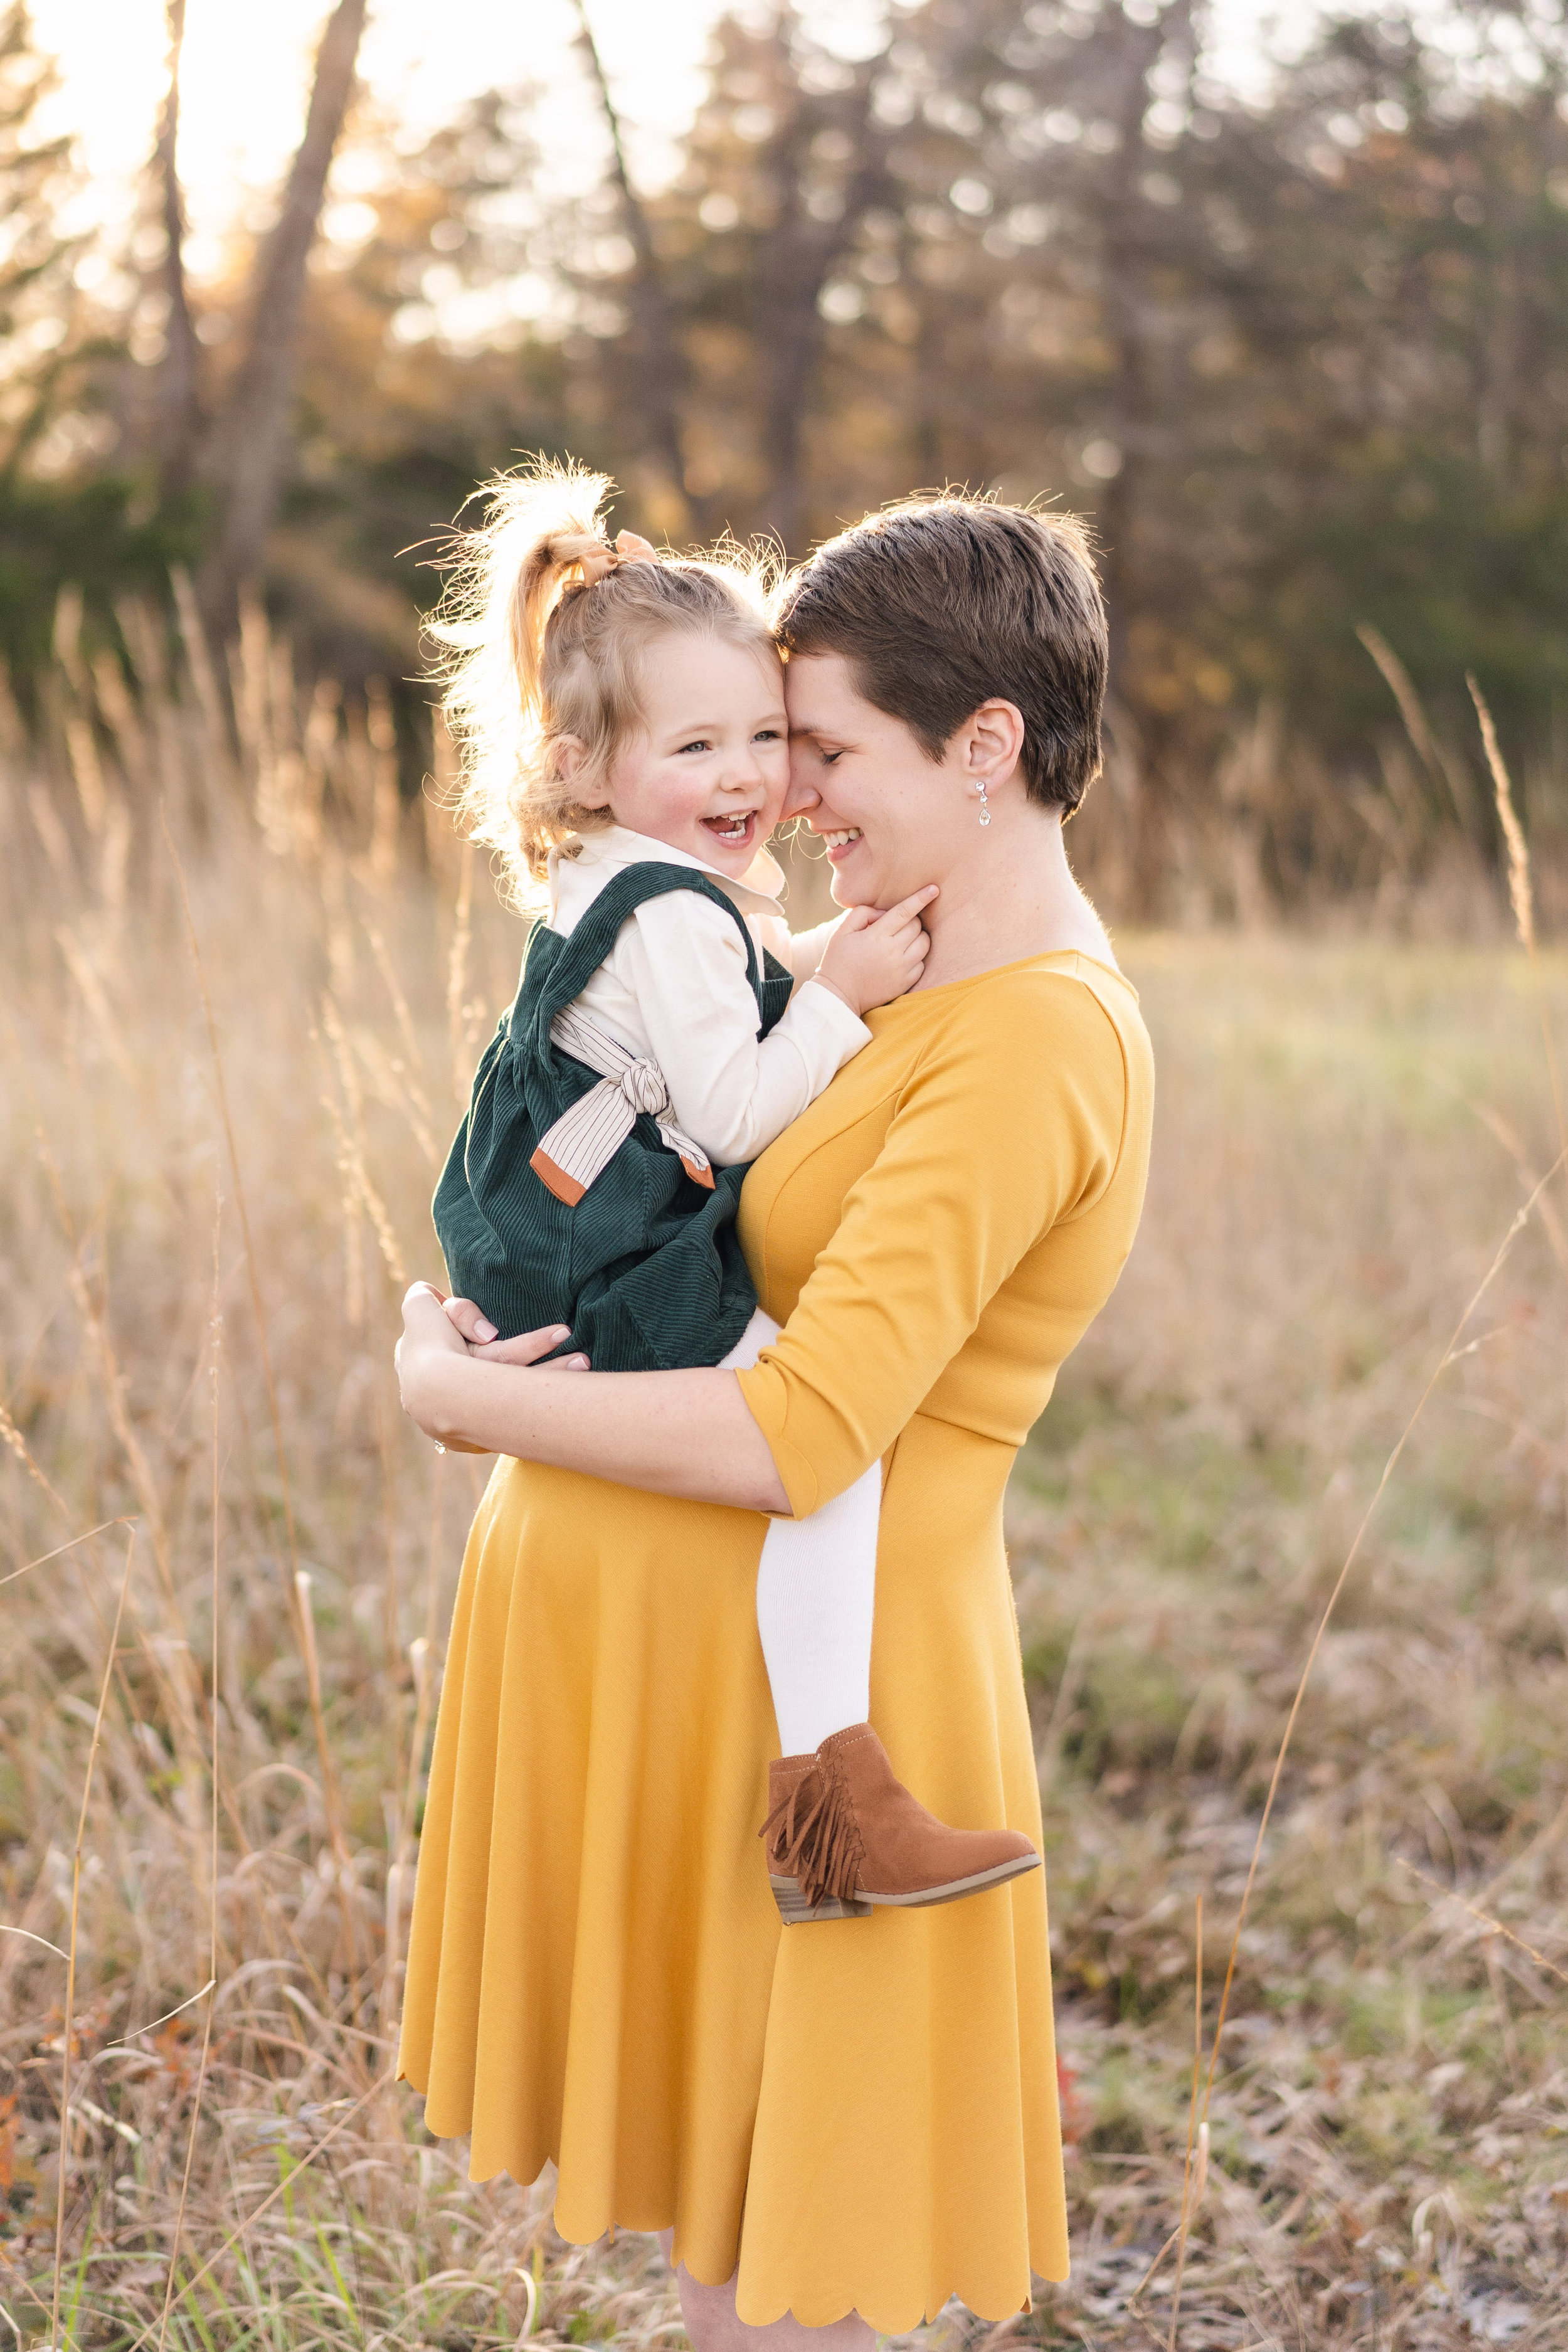 Big sister is held by her pregnant Mom during their maternity session. They are covered by the golden sunset in tall grass near me